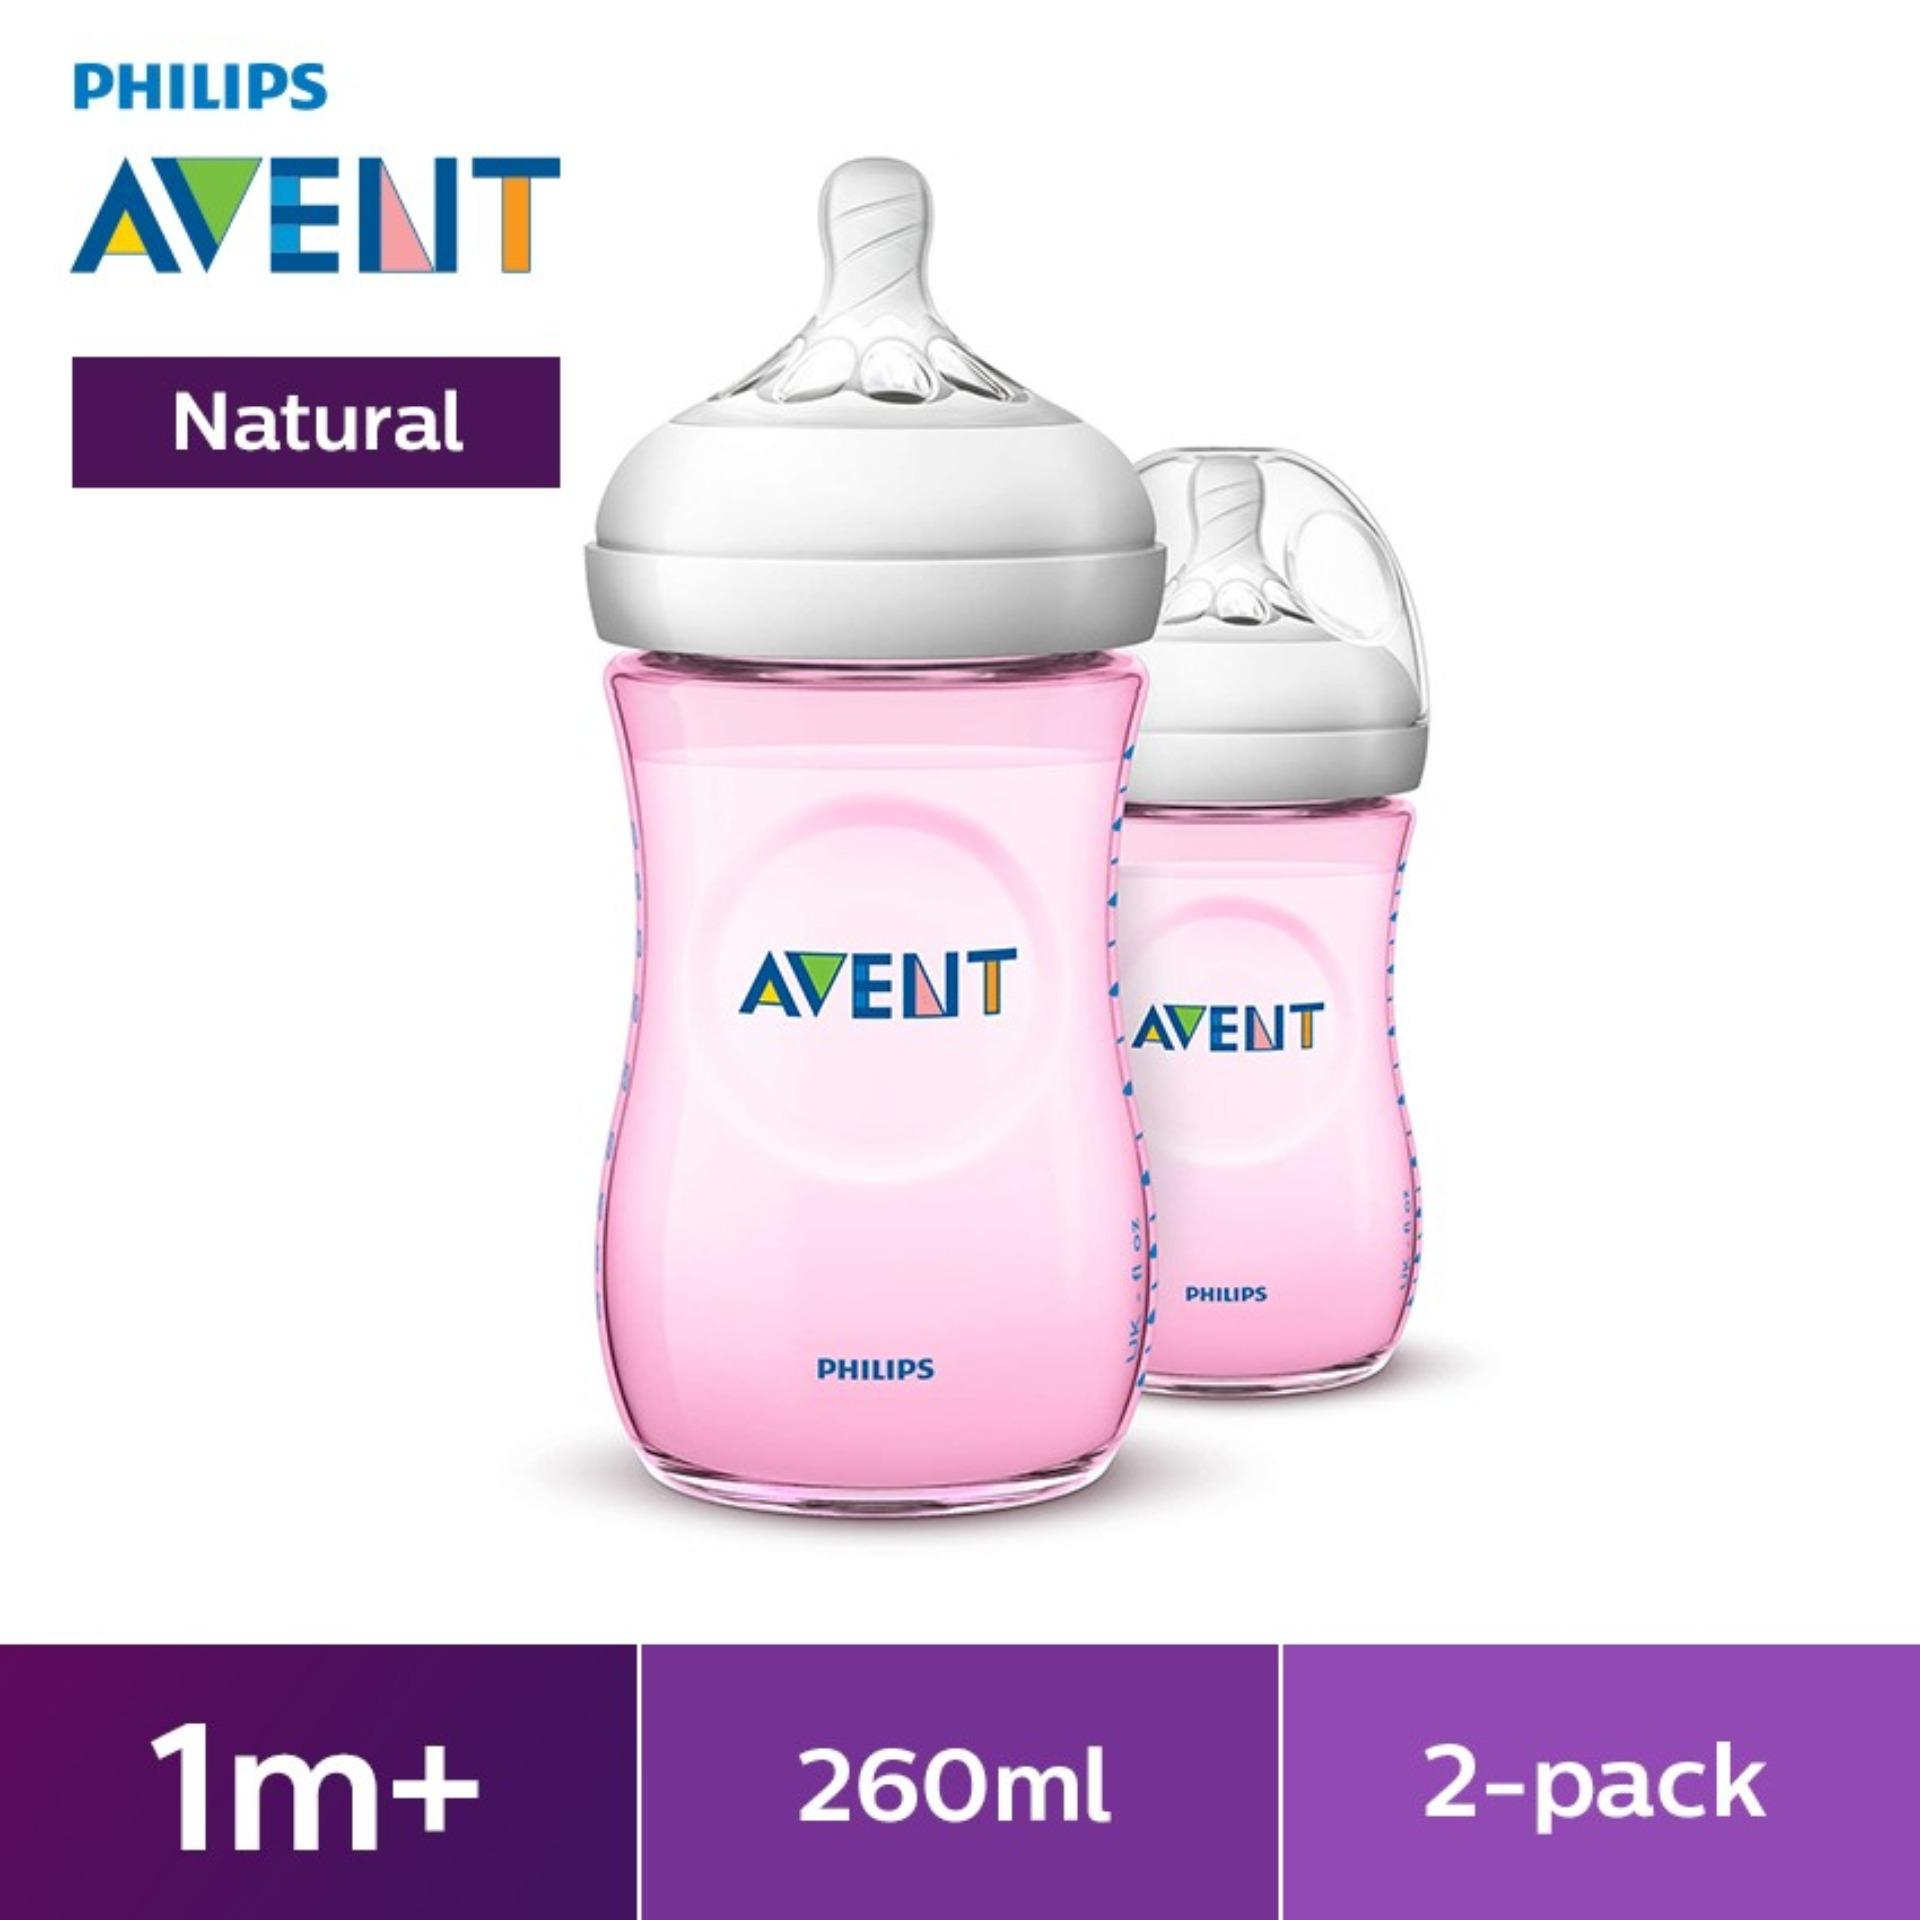 Philips Avent Natural 9oz Bottle Twin Pack - Pink By Lazada Retail Philips Avent.